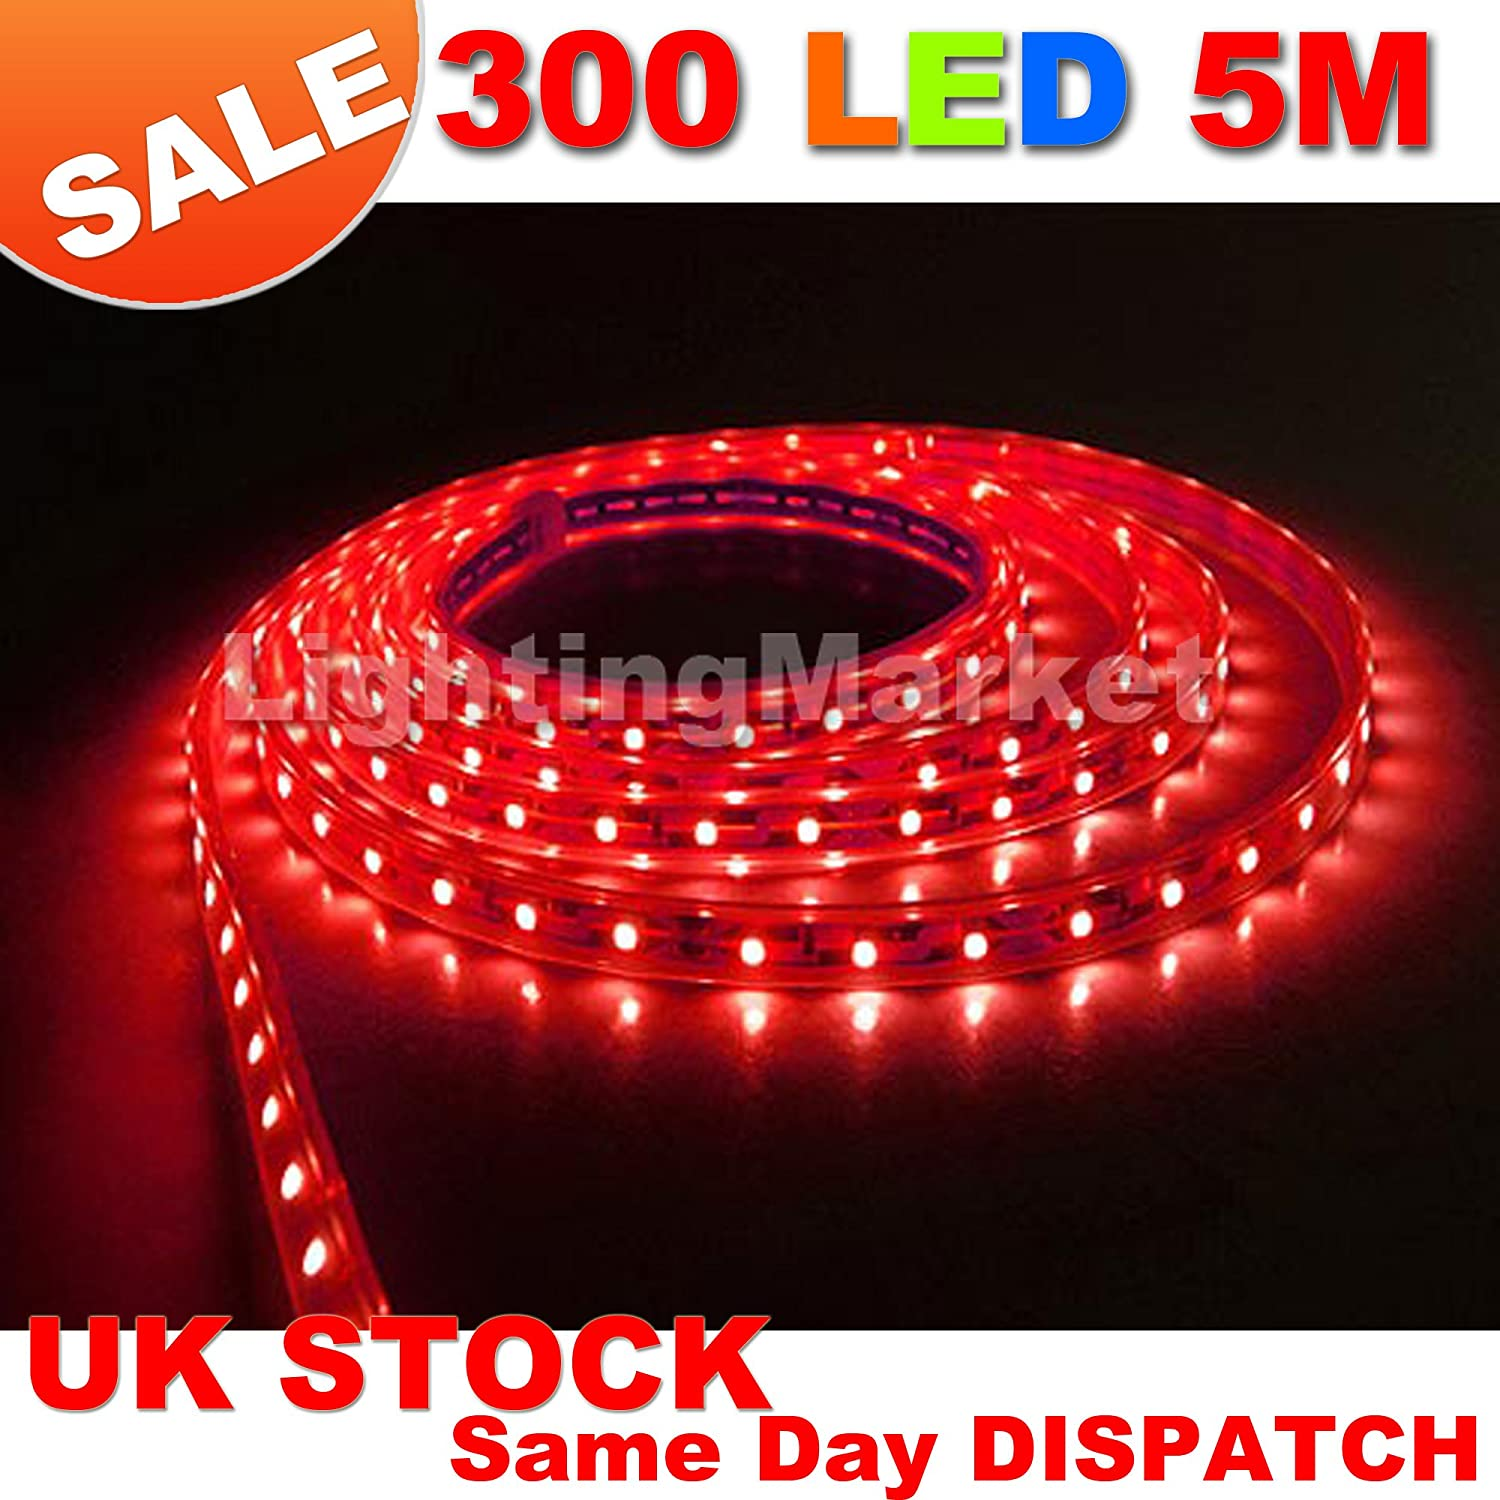 Jndee red 5m 164ft 300 led strip light flexible tape ribbon 5 jndee red 5m 164ft 300 led strip light flexible tape ribbon 5 metres with 300 smd leds dc 12v ideal for kitchens home led lighting bars aloadofball Gallery